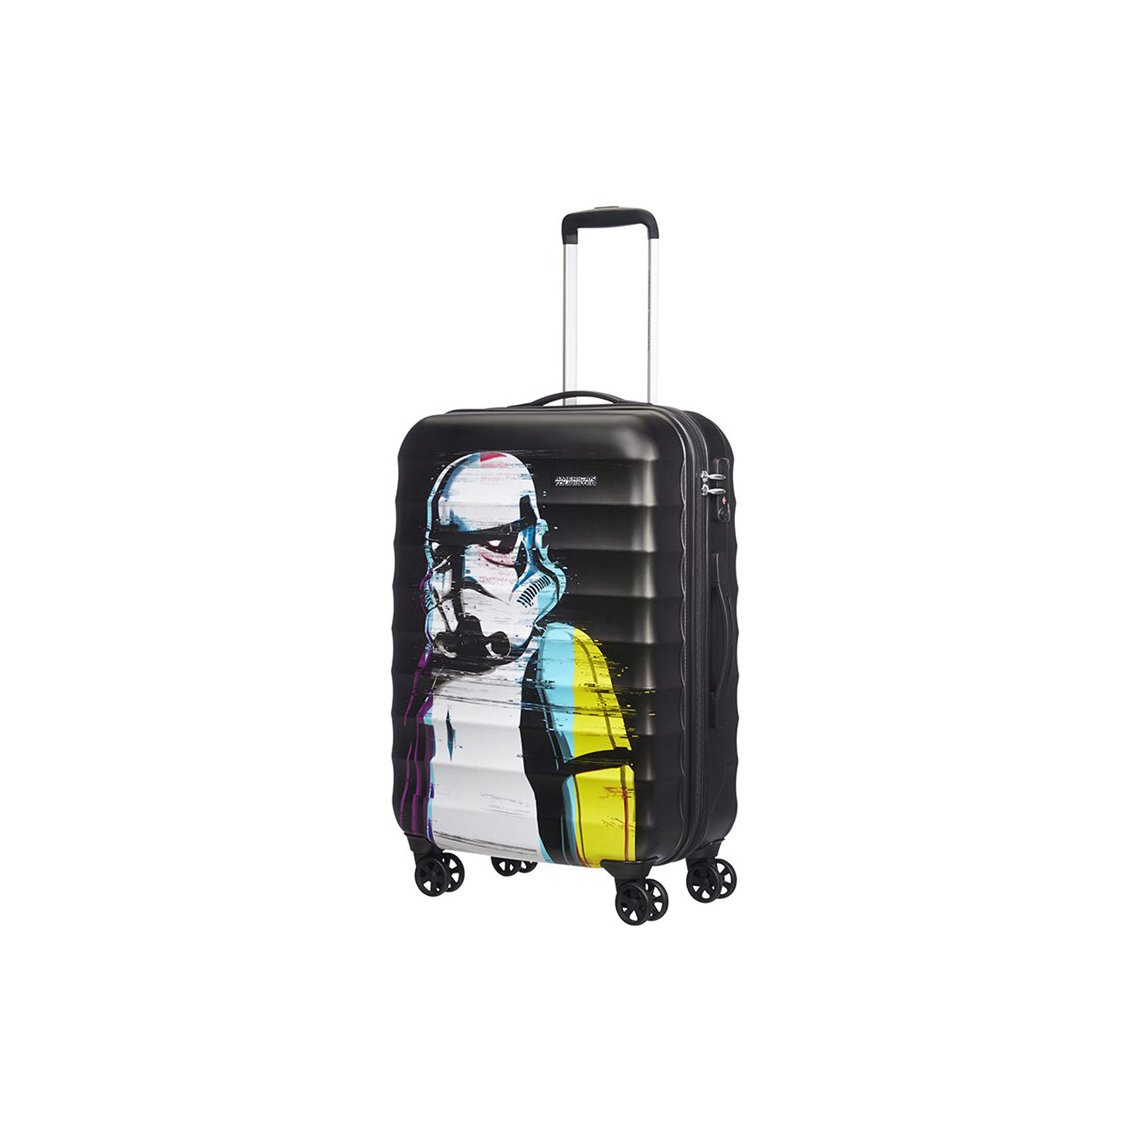 American Tourister Star Wars Hardside Luggage with Spinner Wheels Storm Trooper